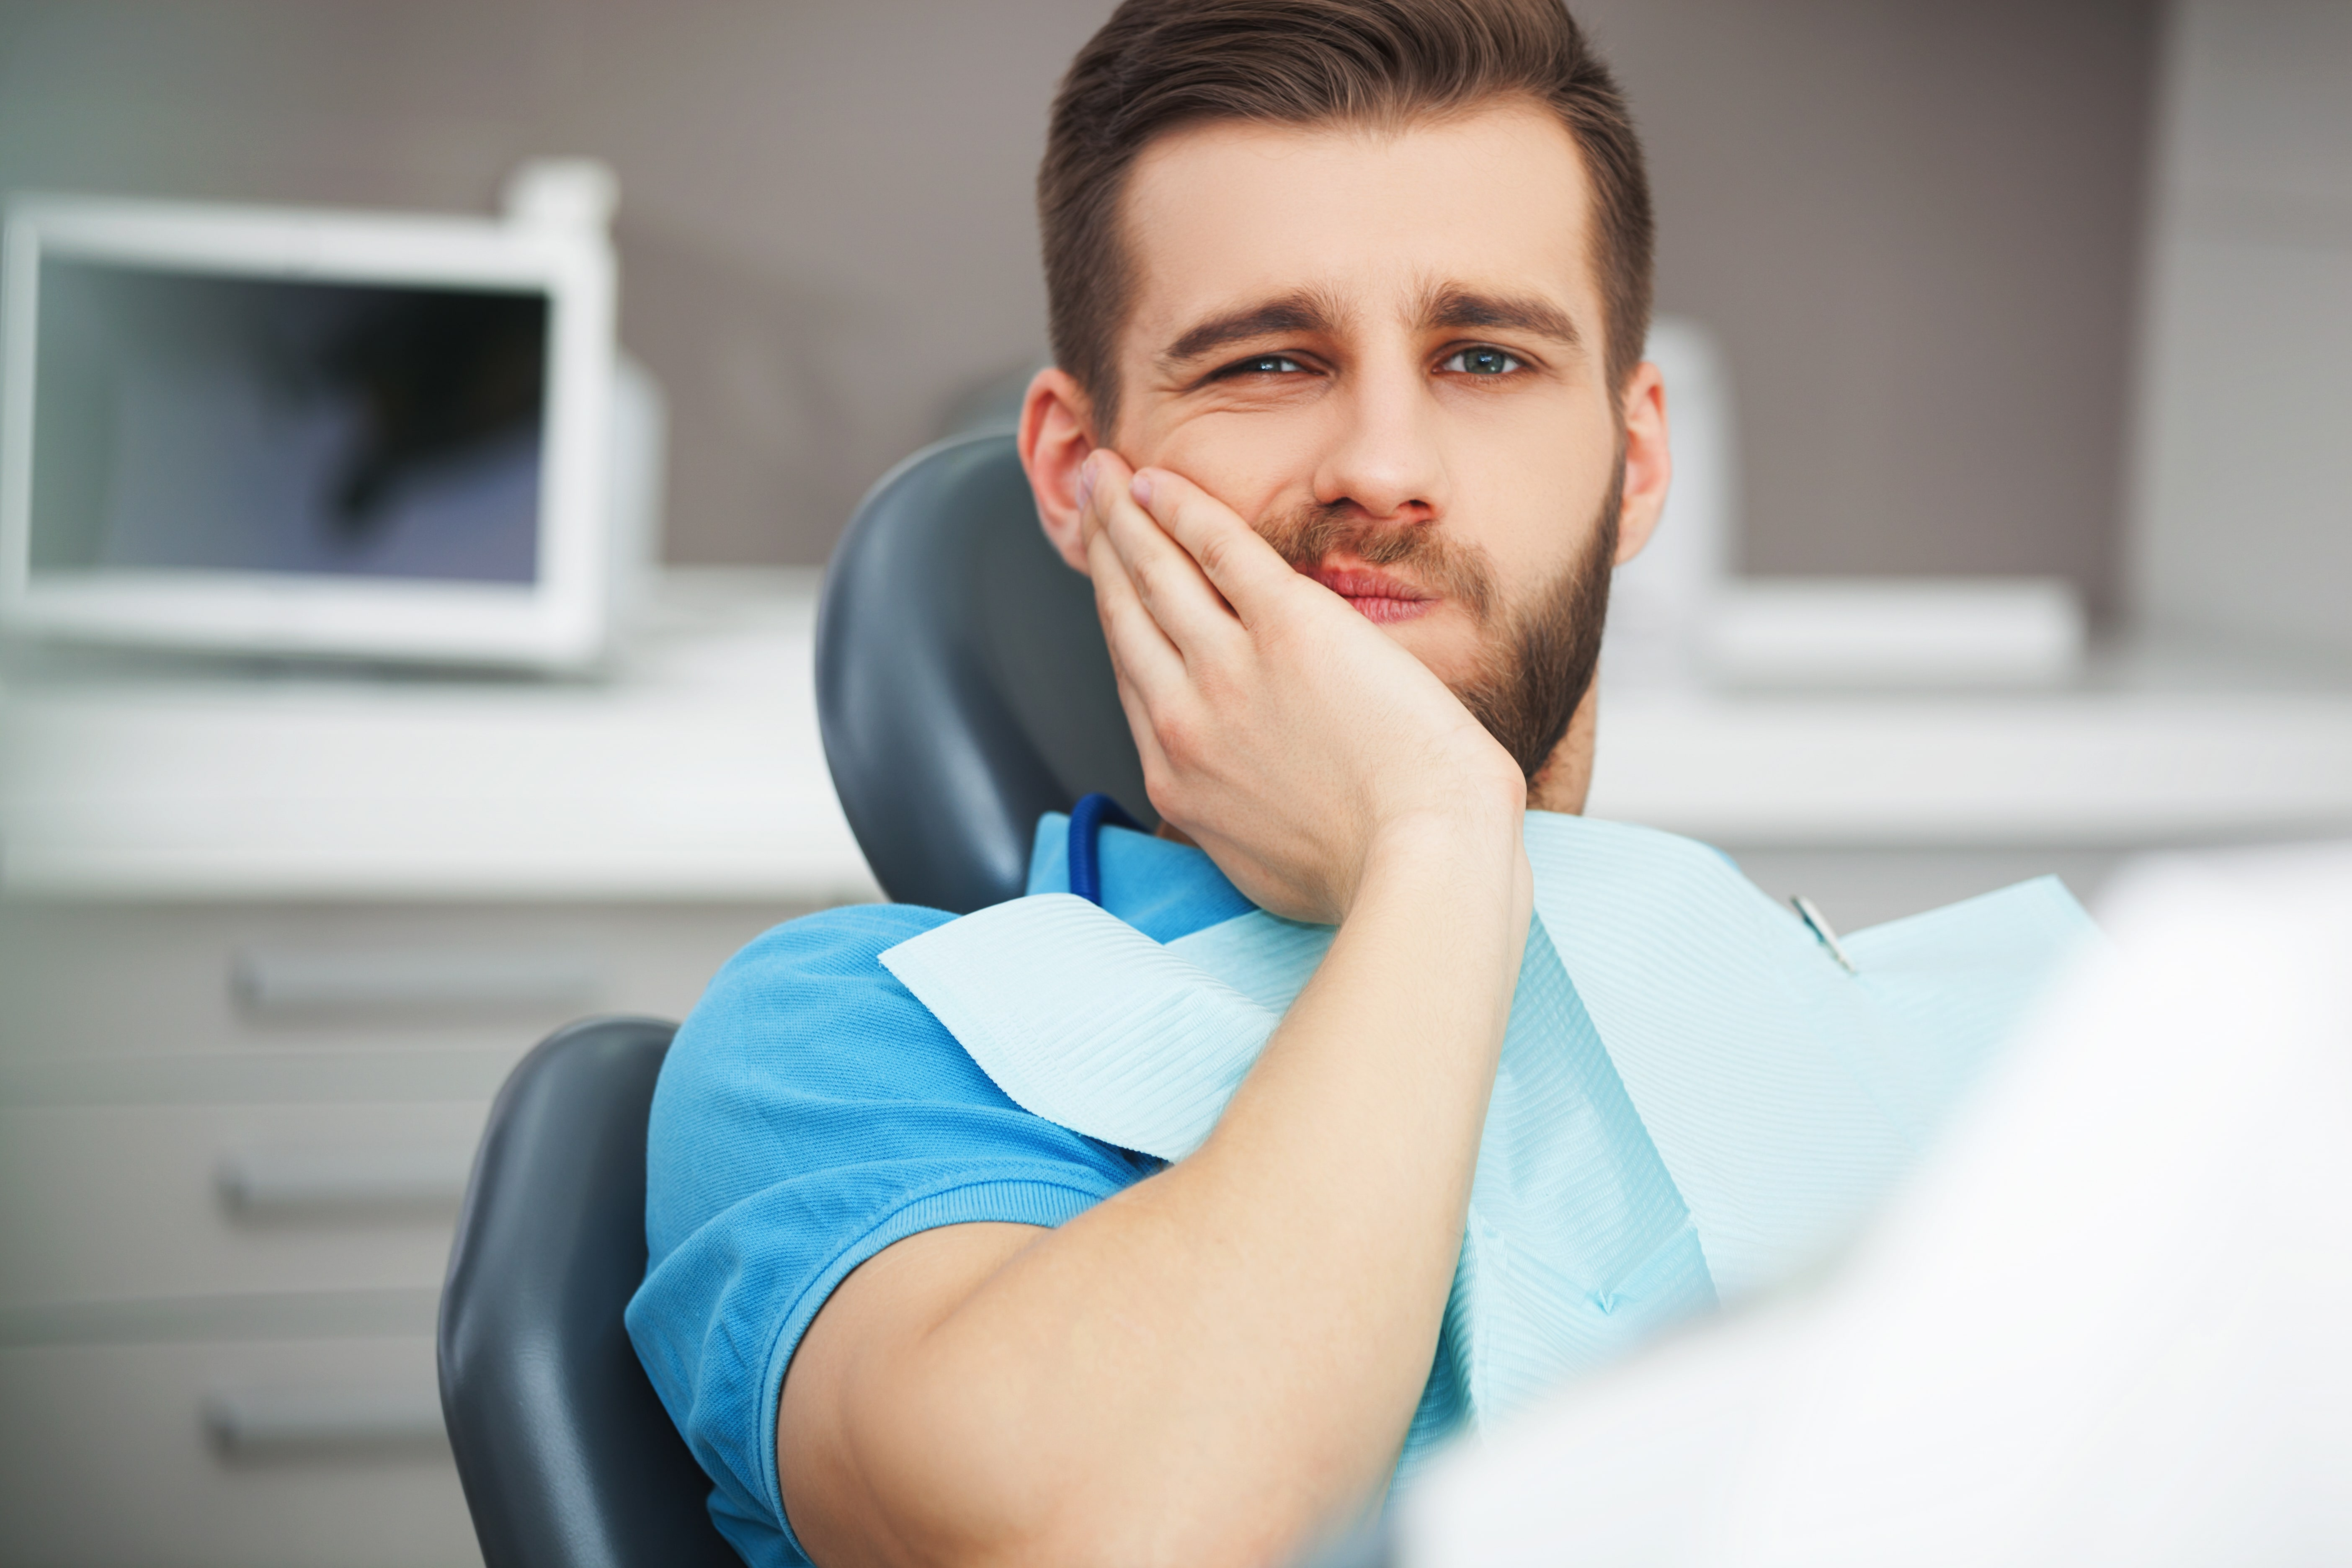 Why Do I Need Root Canal Treatment?